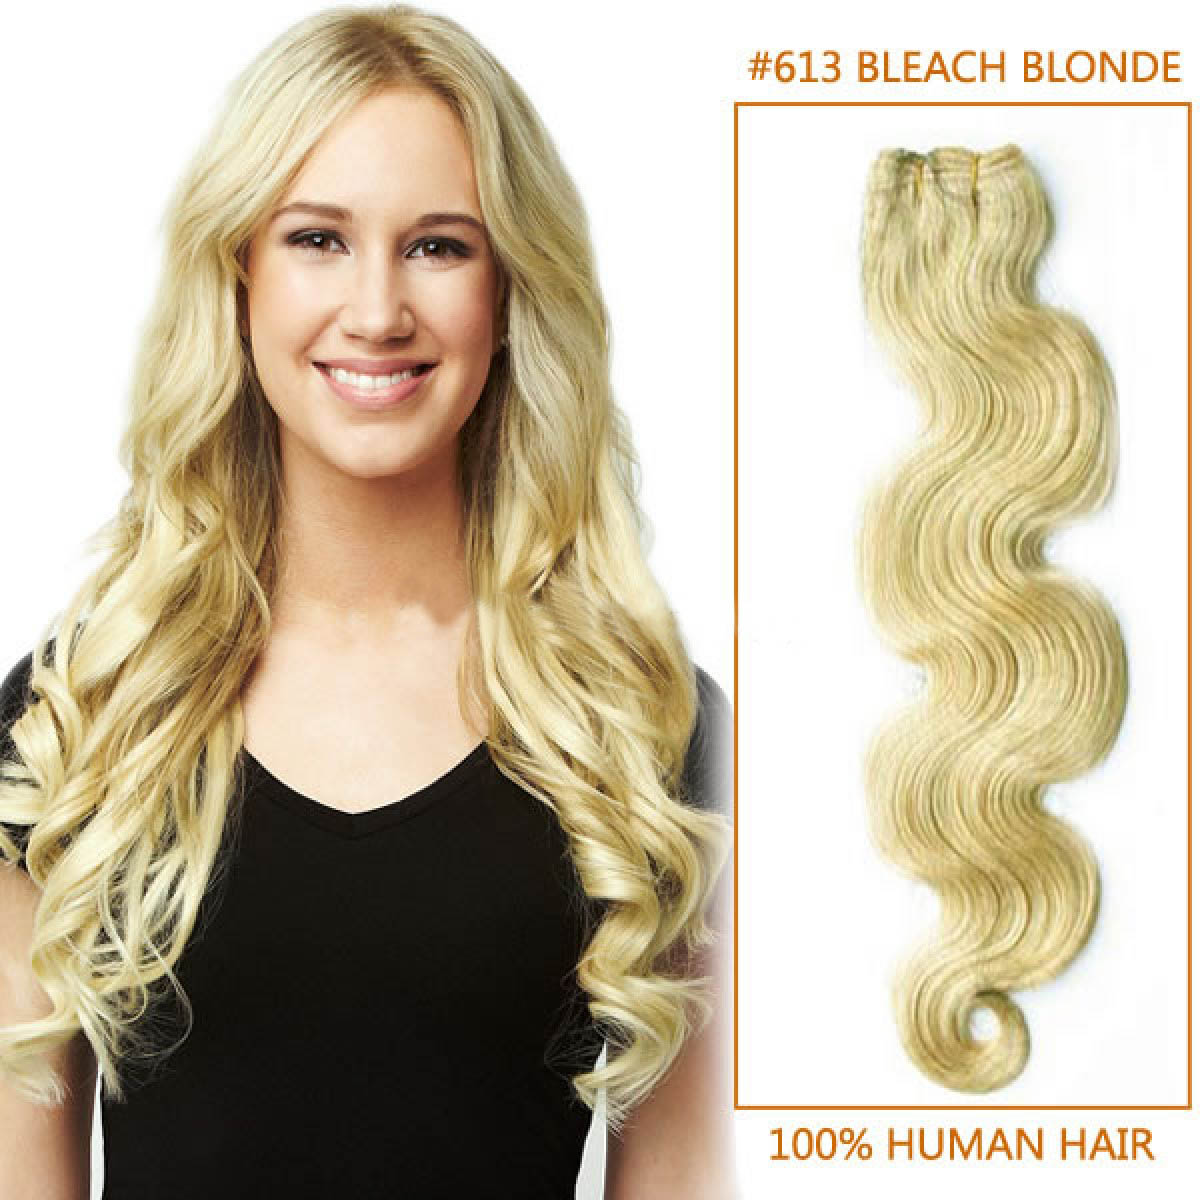 16 Inch 613 Bleach Blonde Body Wave Brazilian Virgin Hair Wefts